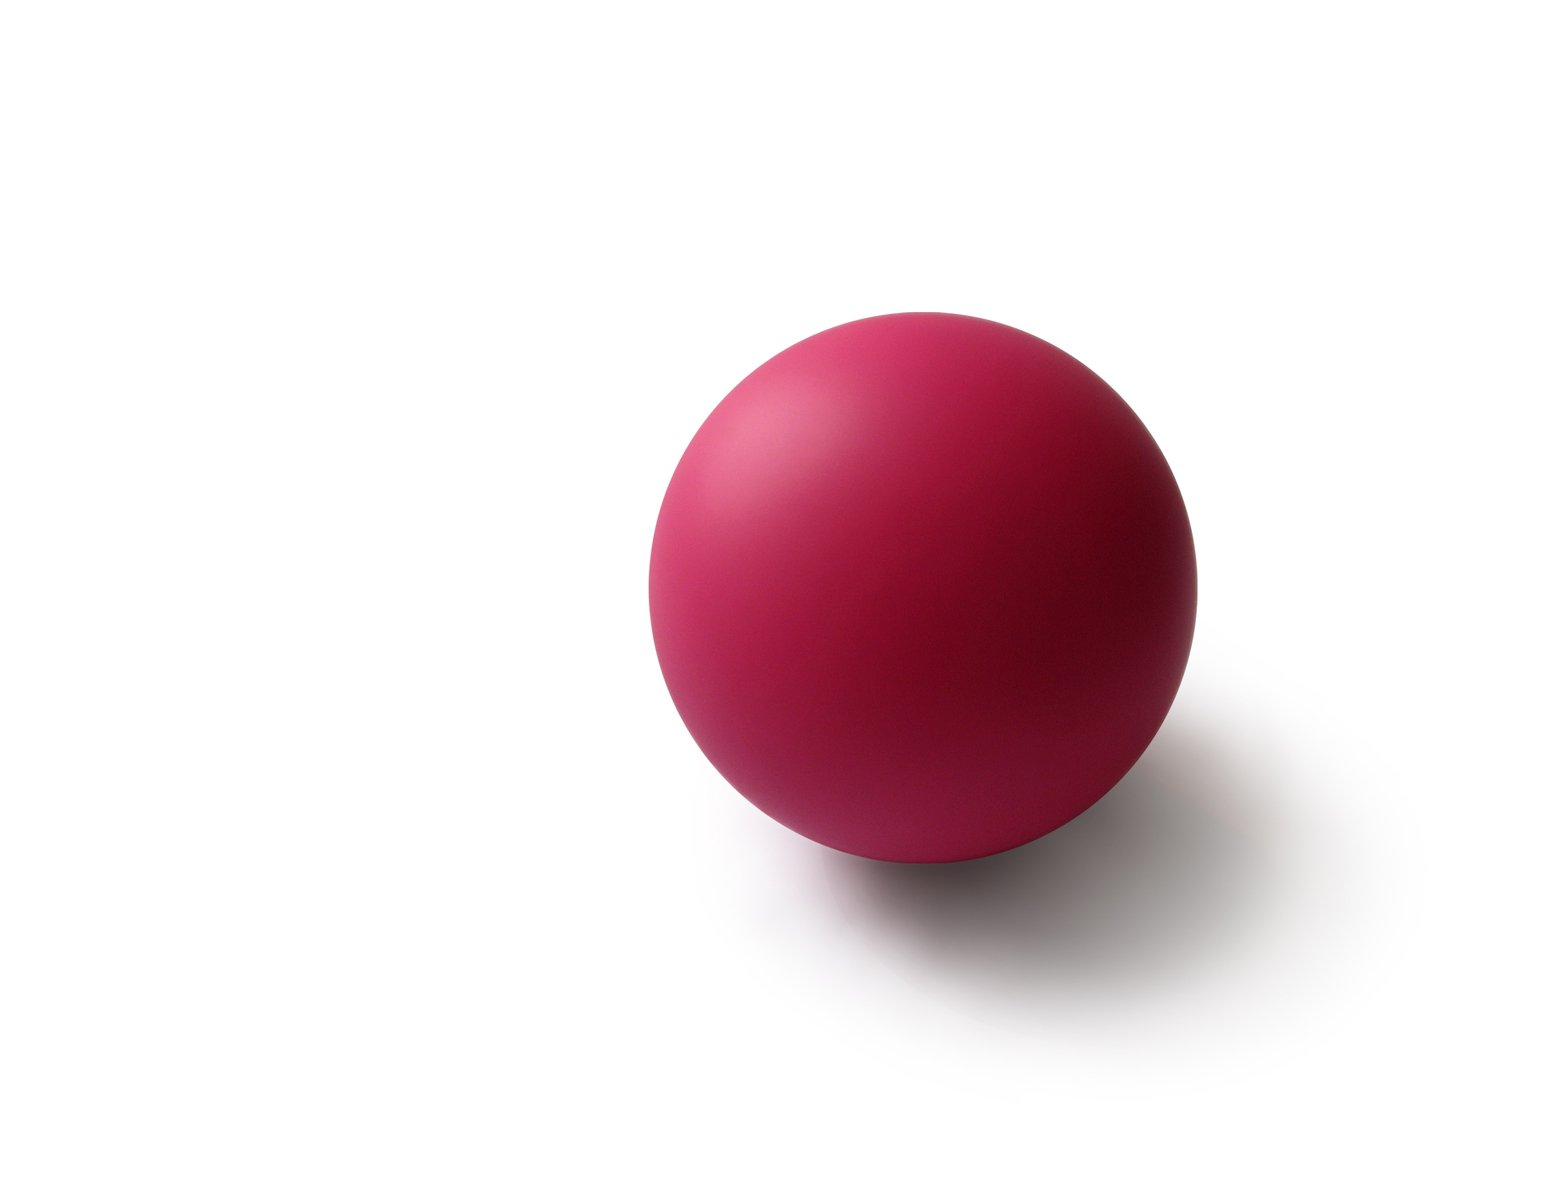 Free Pink Rubber Ball Stock Photo Freeimages Com